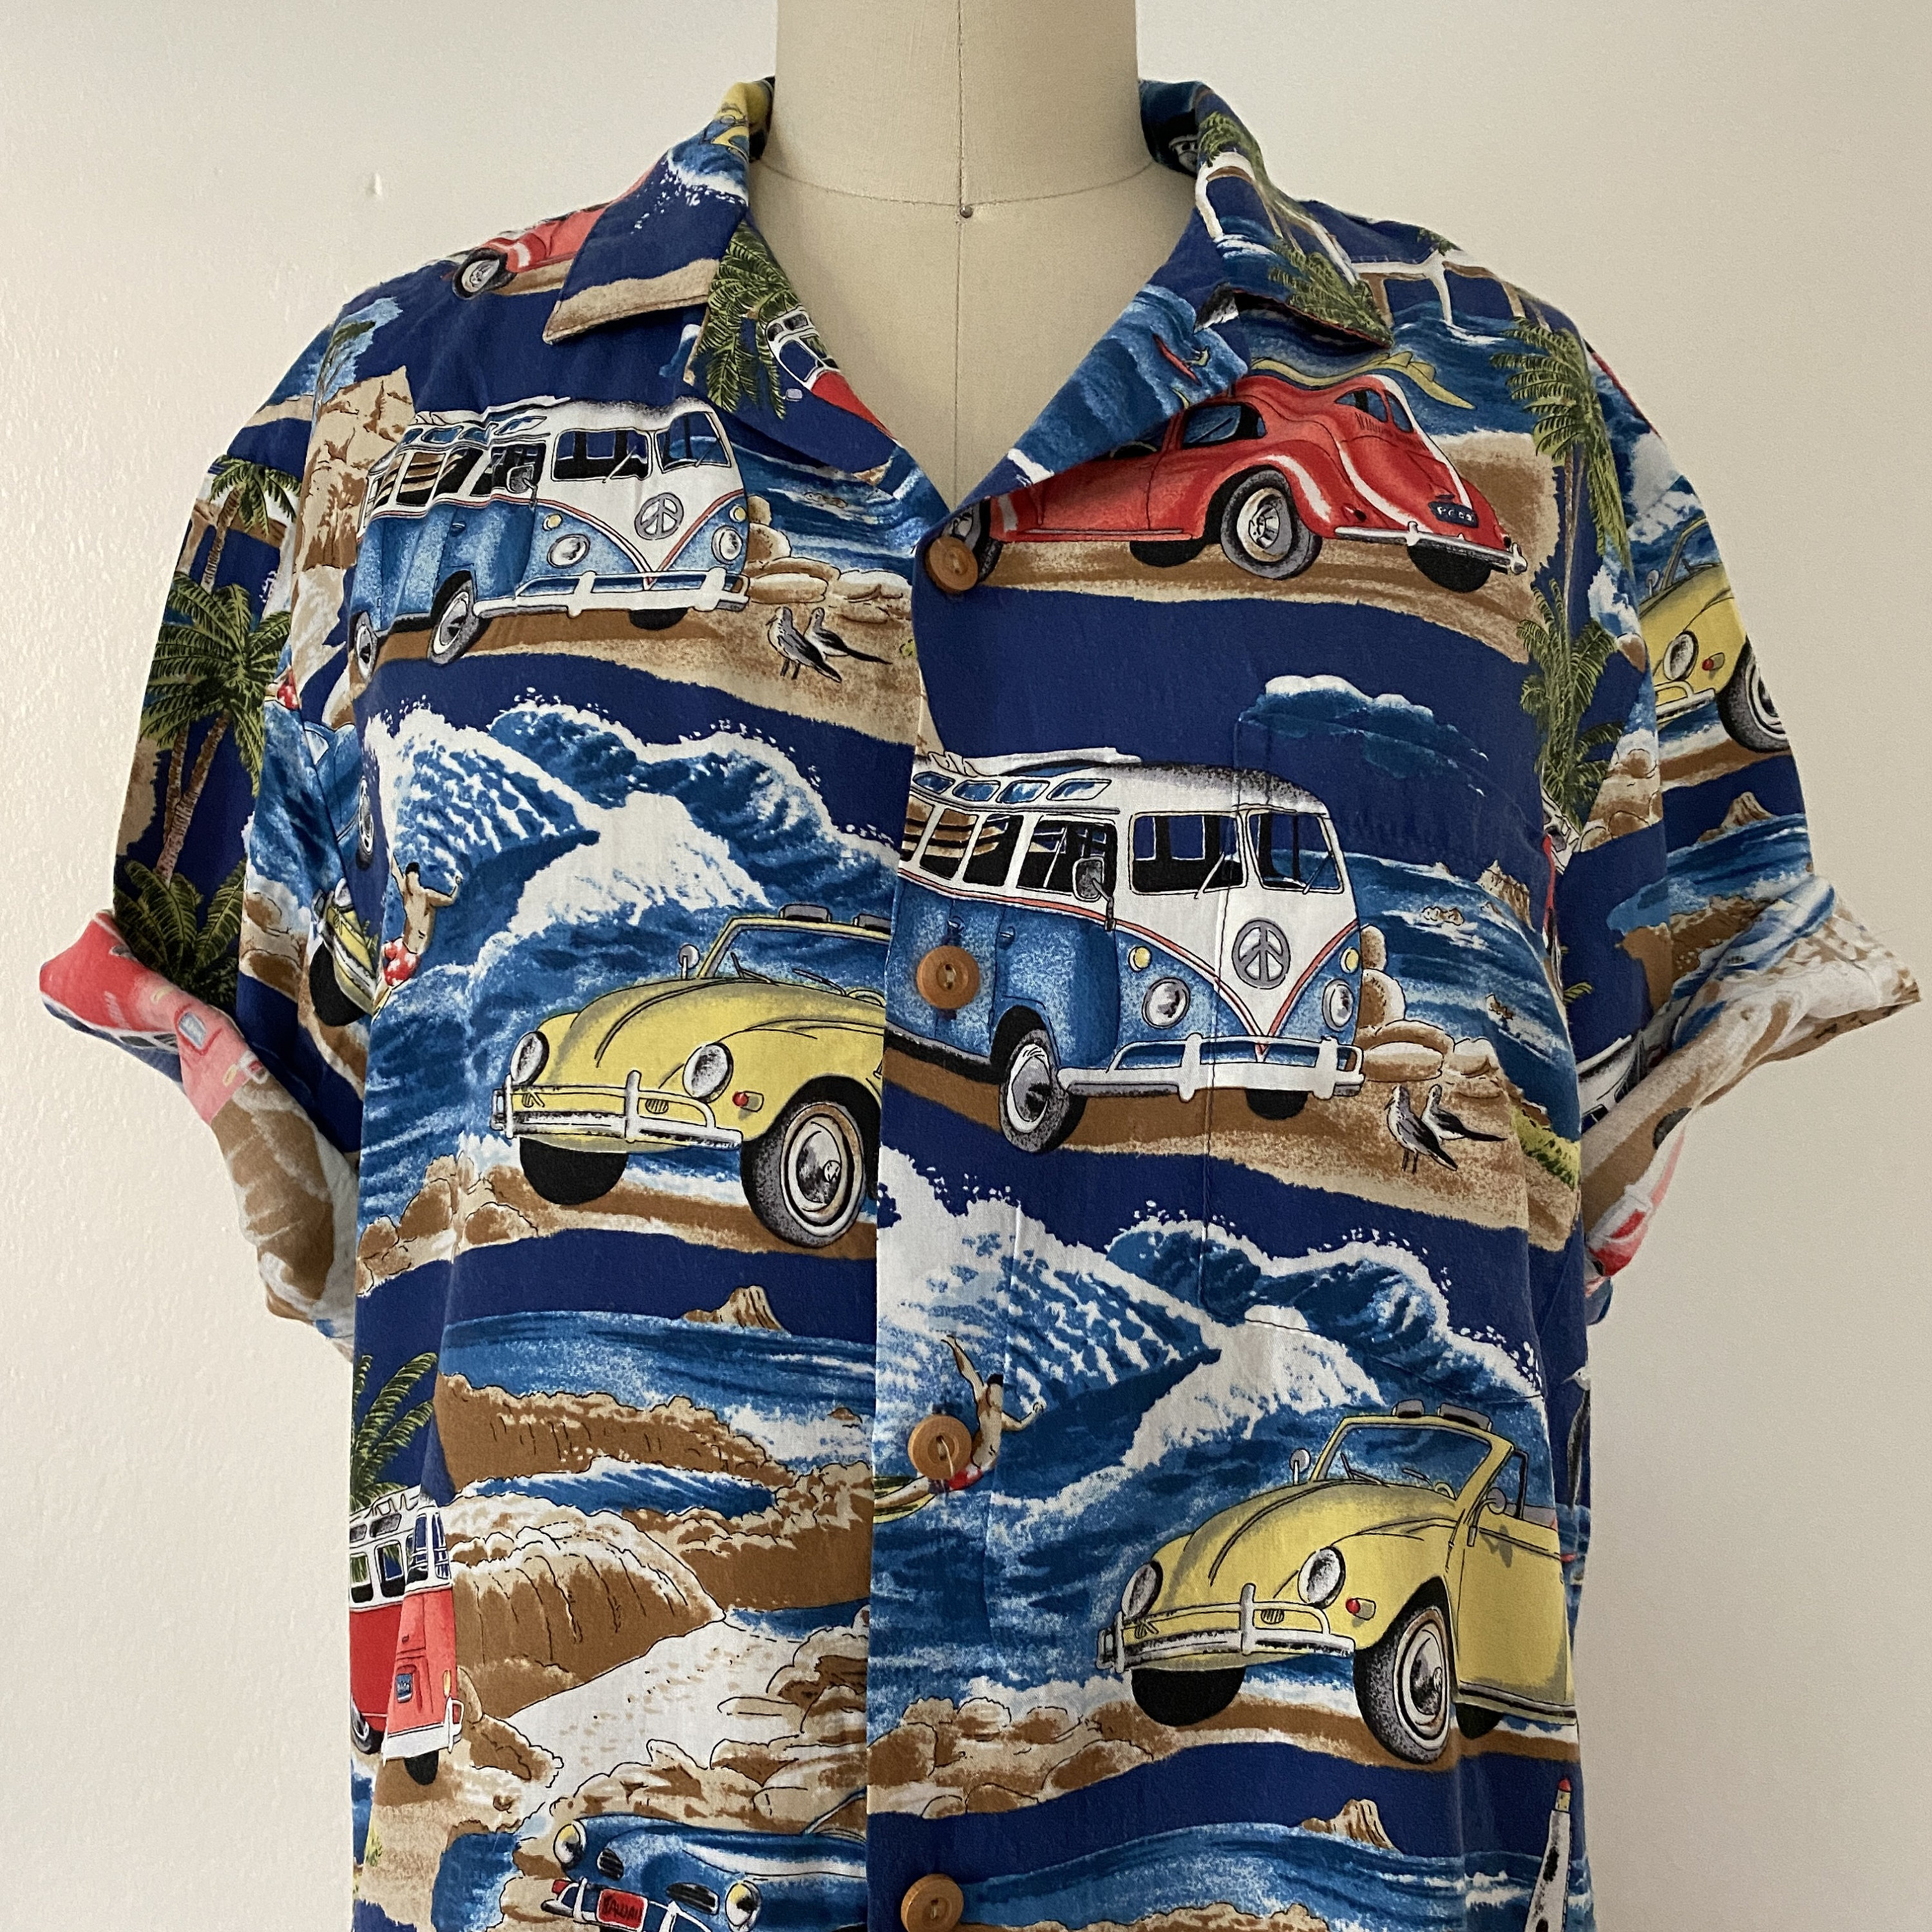 1970s Men's Shirt Styles – Vintage 70s Shirts for Guys 1970s Microbus Vw Vintage Hawaiian Shirt Rayon Button Front Short Sleeve Camp Beach Down Laua Tiki Party $34.20 AT vintagedancer.com